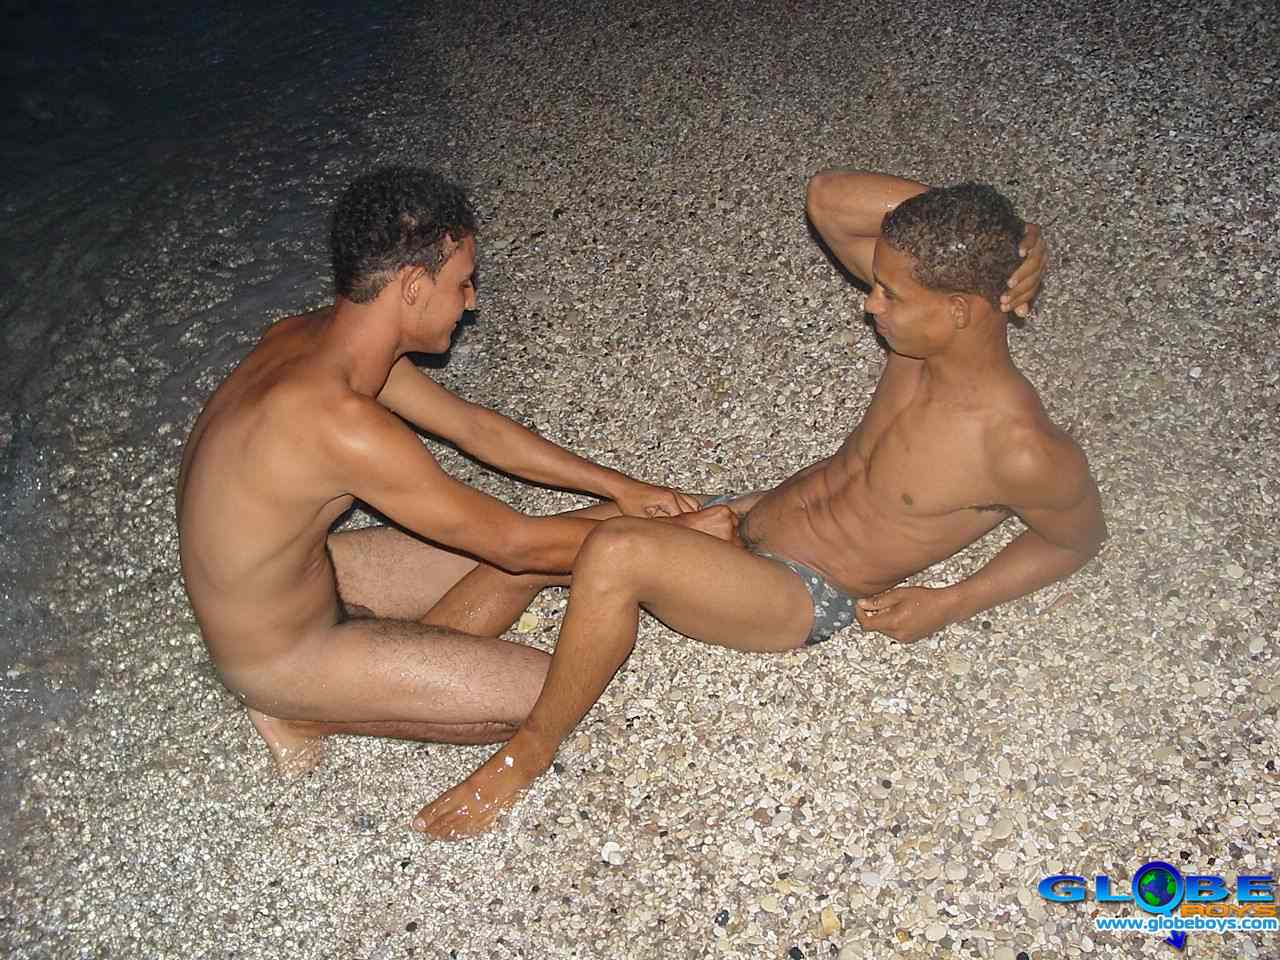 Twinks camping gay sex stories he delights 9